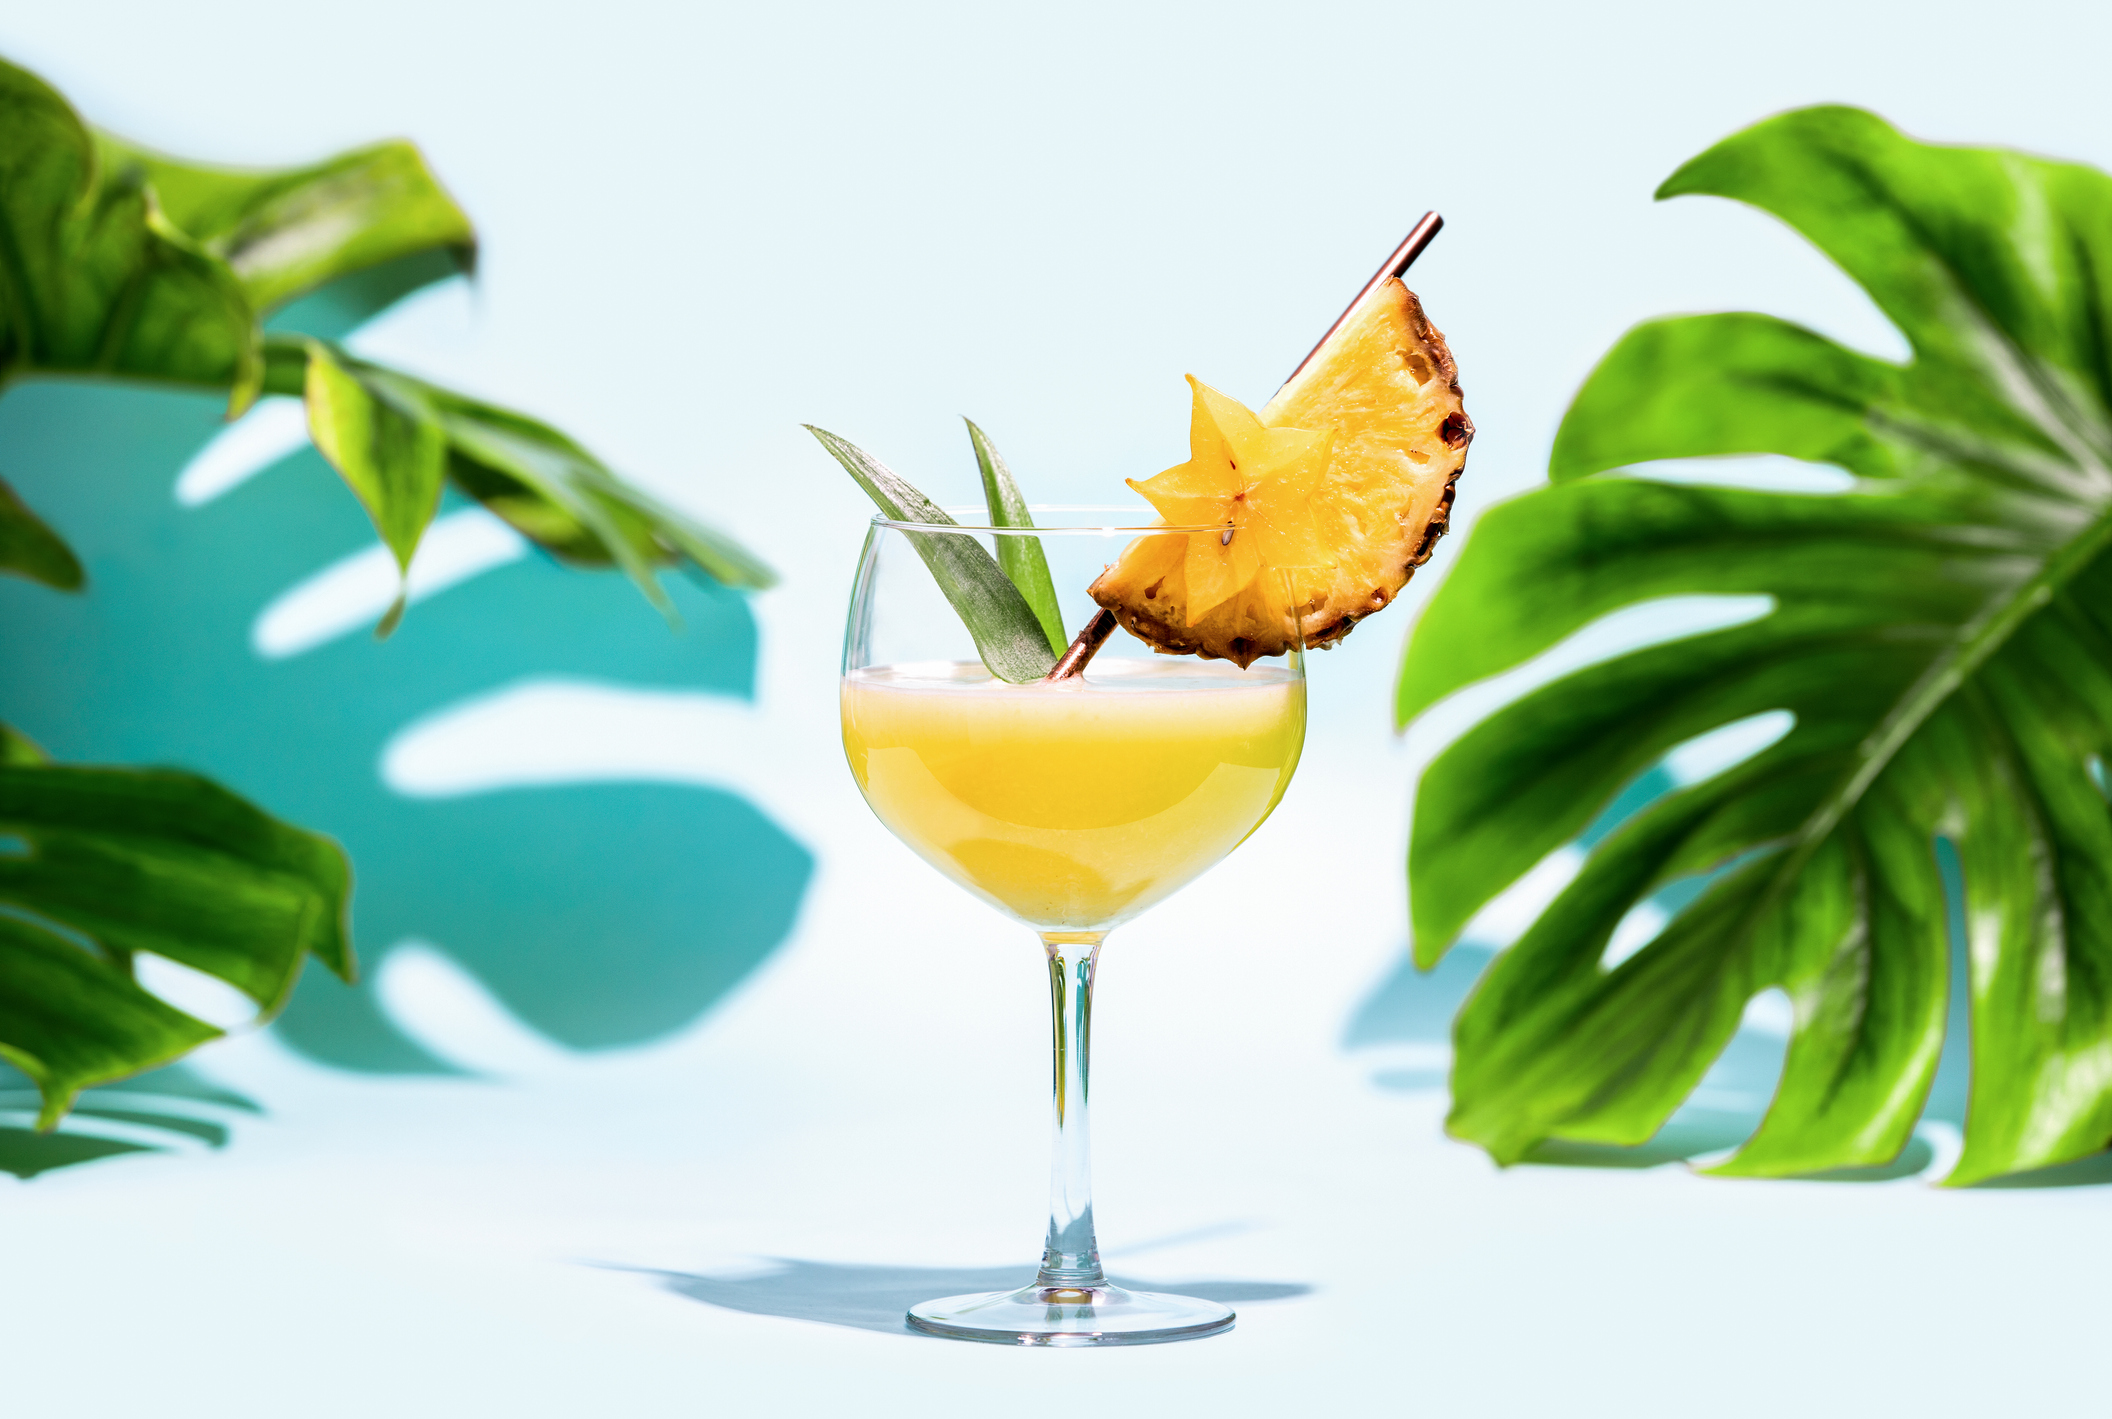 Summer Refreshing Alcoholic Cocktail Concept, Front View